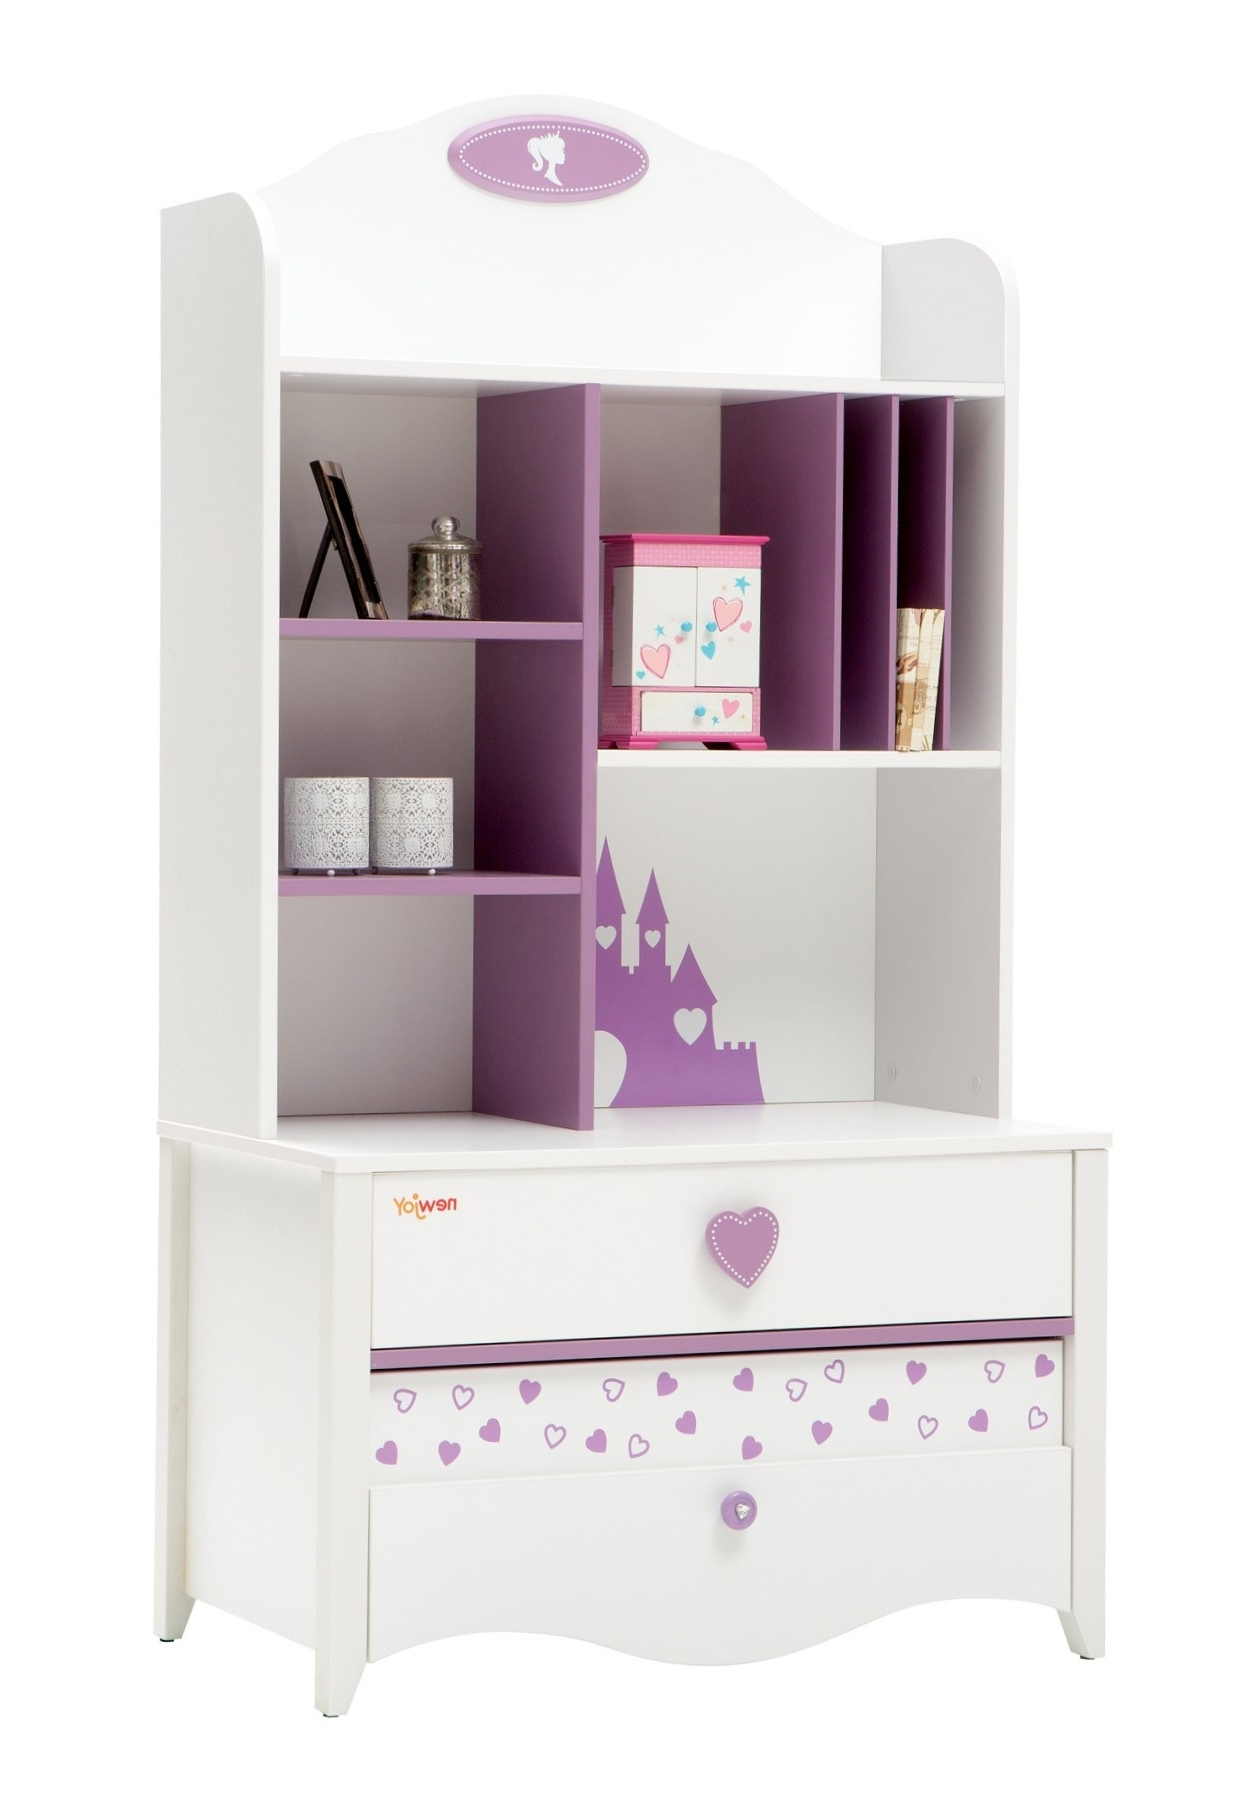 Newjoy Princess Children's Bookcase Intended For Well Liked Girls Bookcases (View 11 of 15)